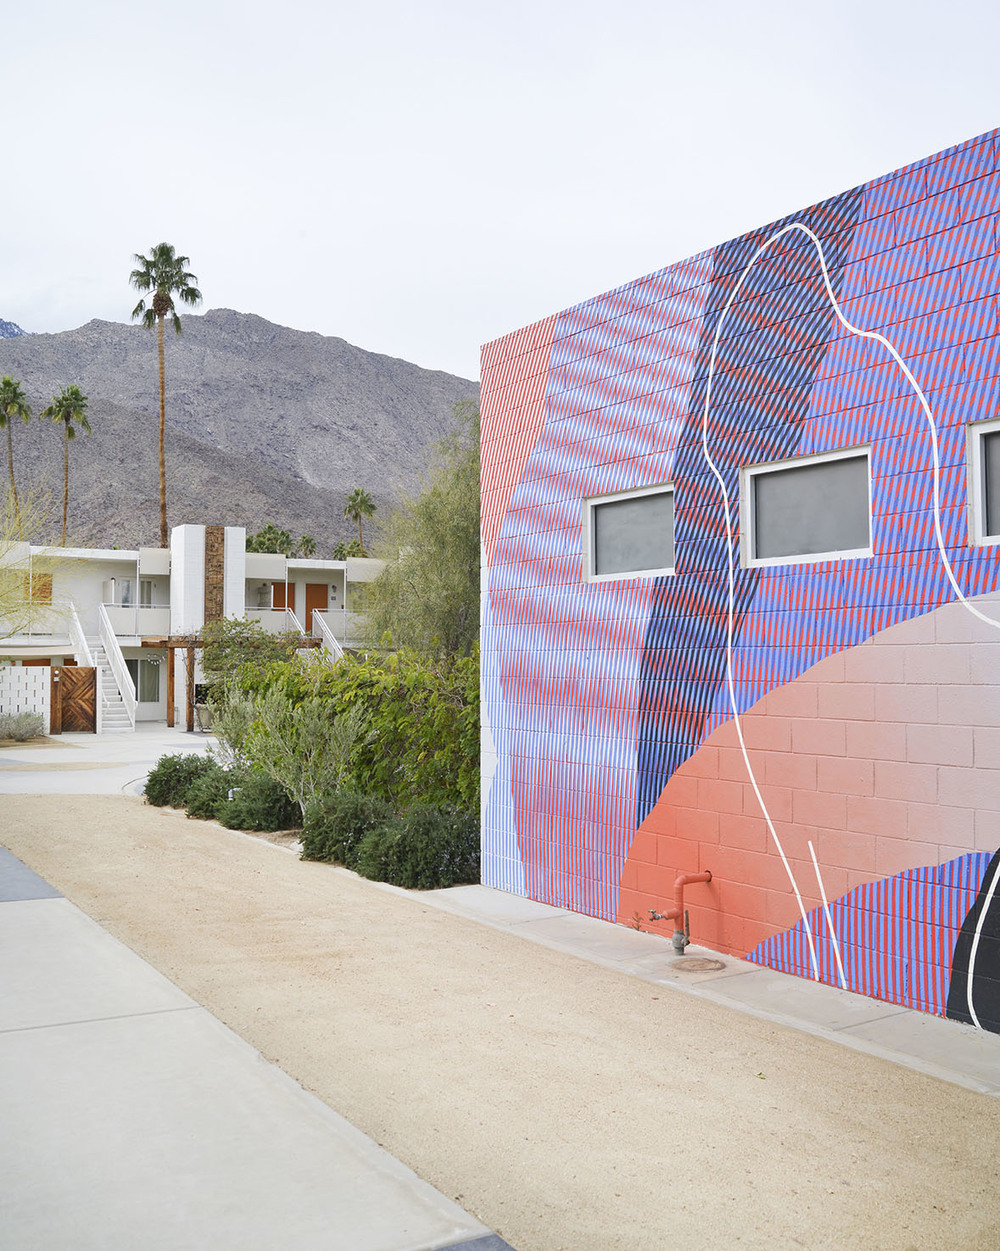 6local-creative-weekenders-palmsprings-california-.jpg